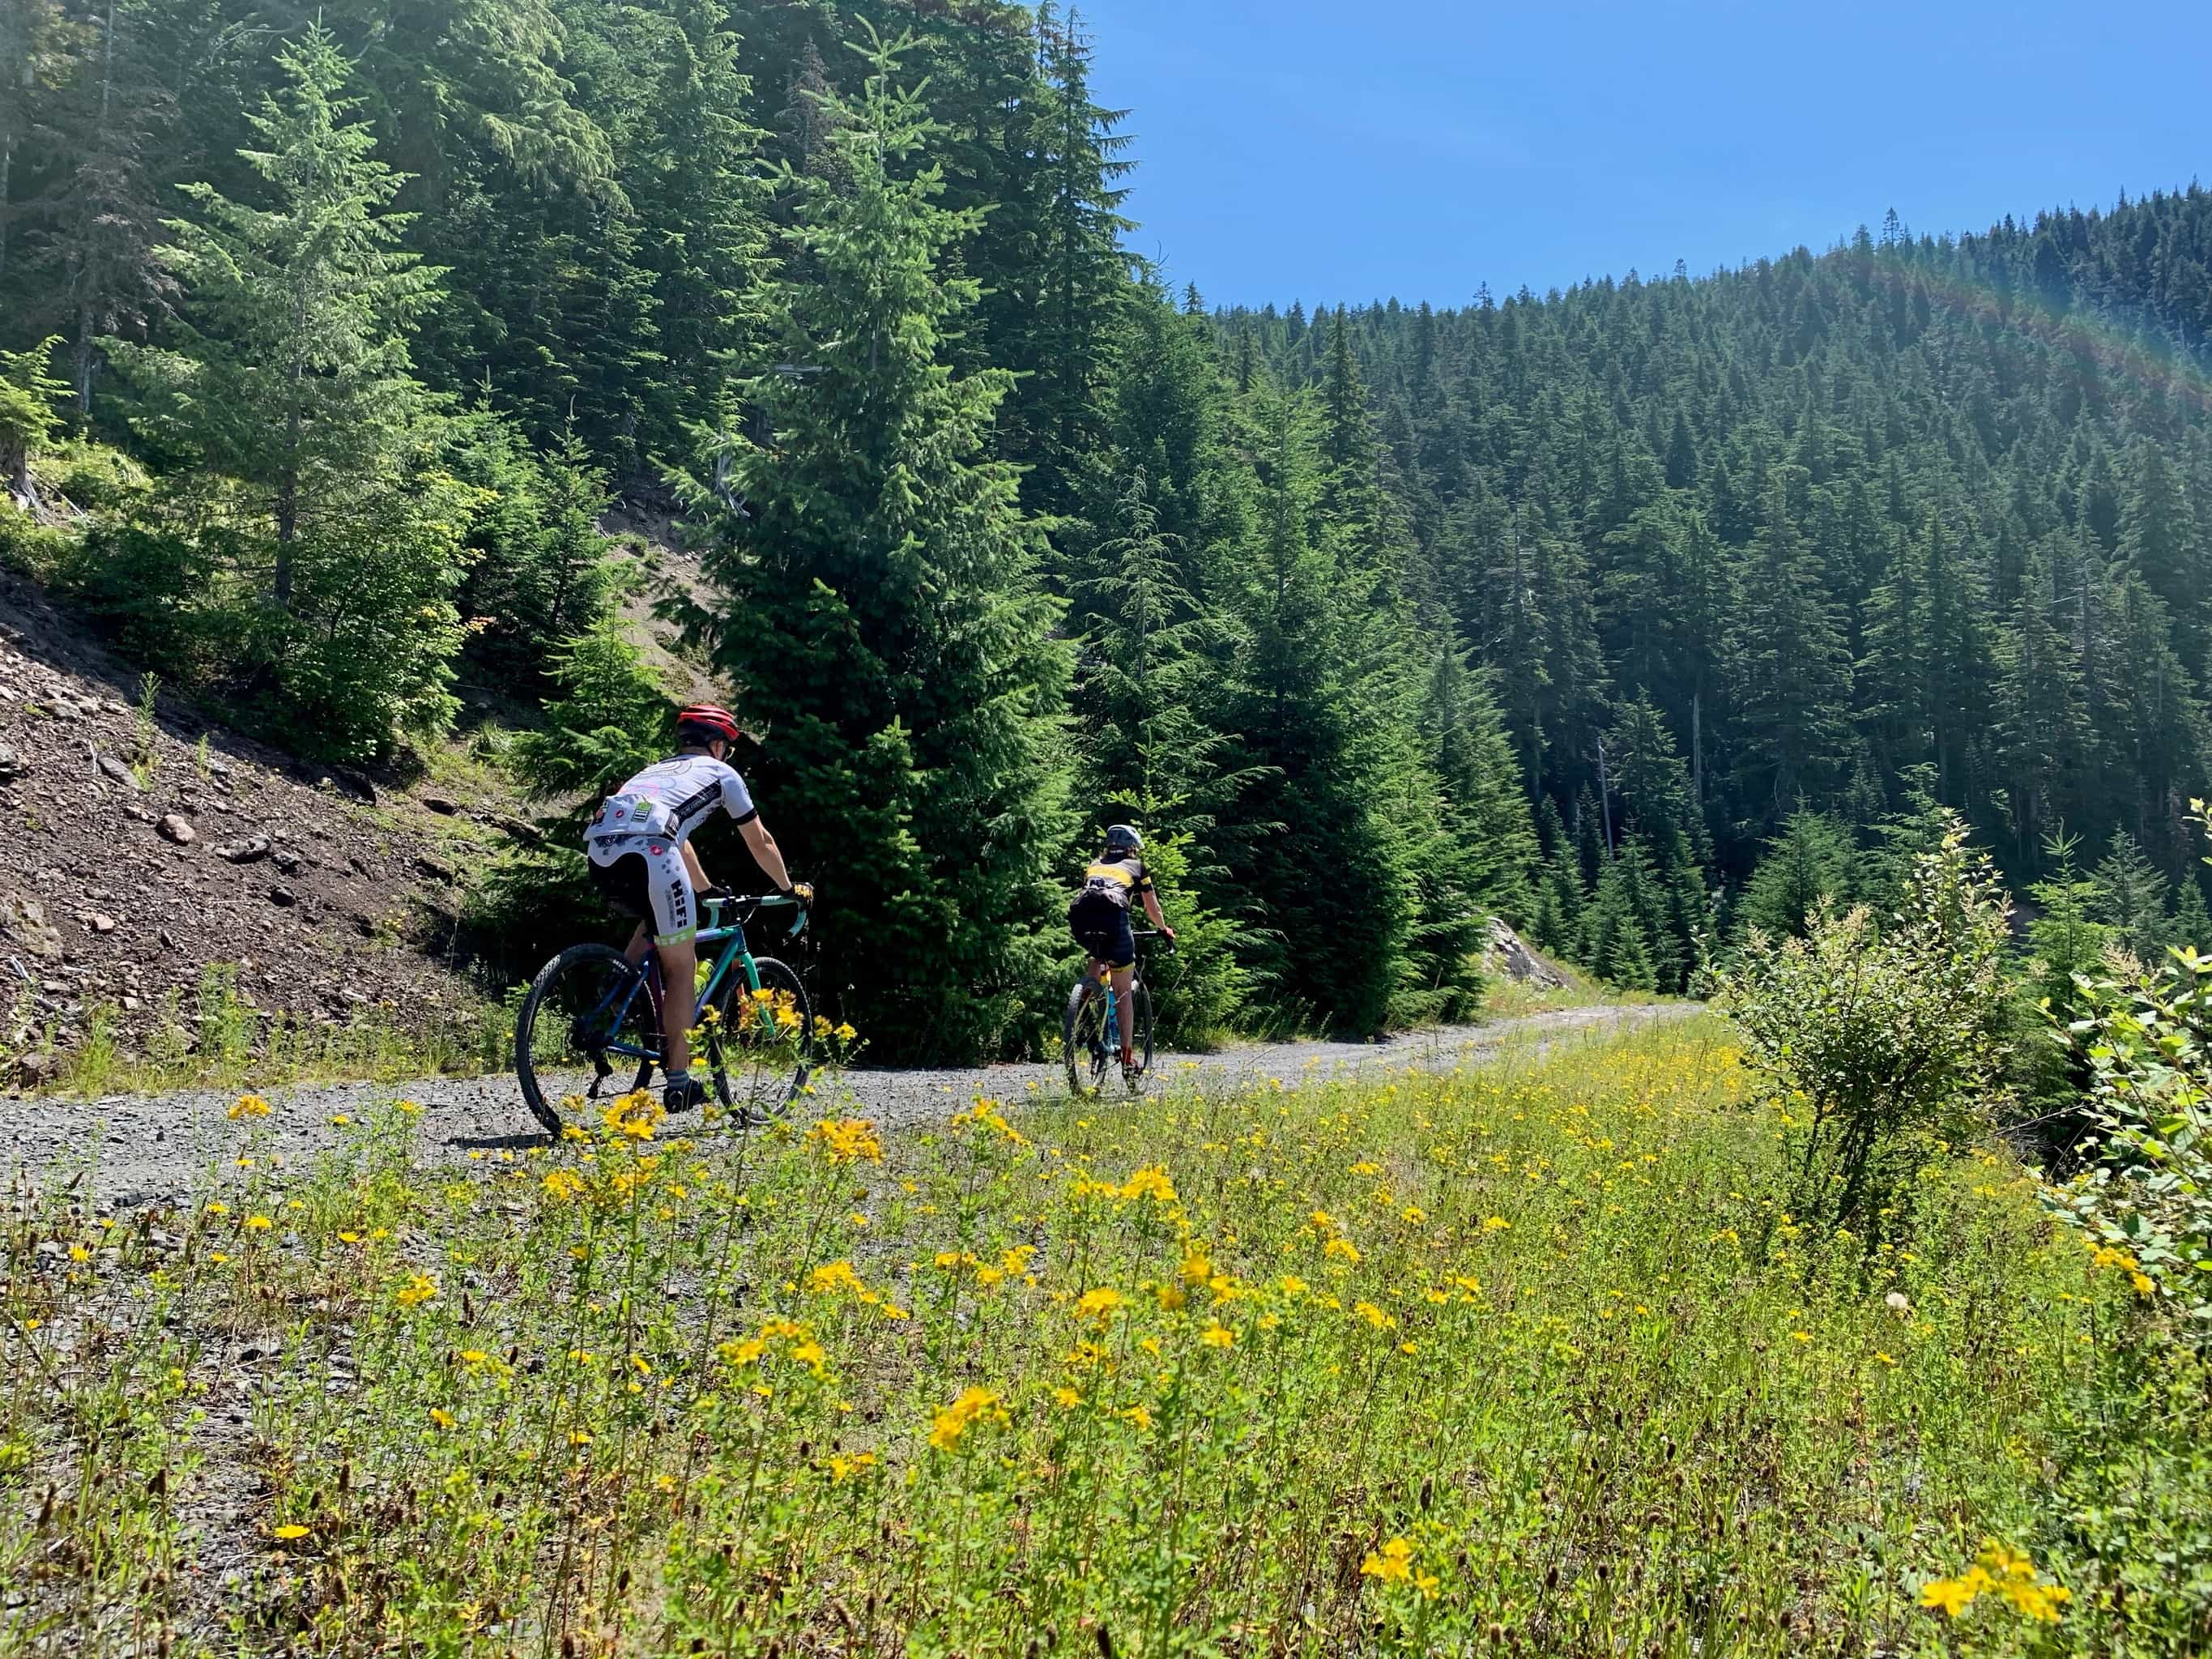 Cyclist on gravel road with flowers in bloom near Trapper Creek Wilderness.